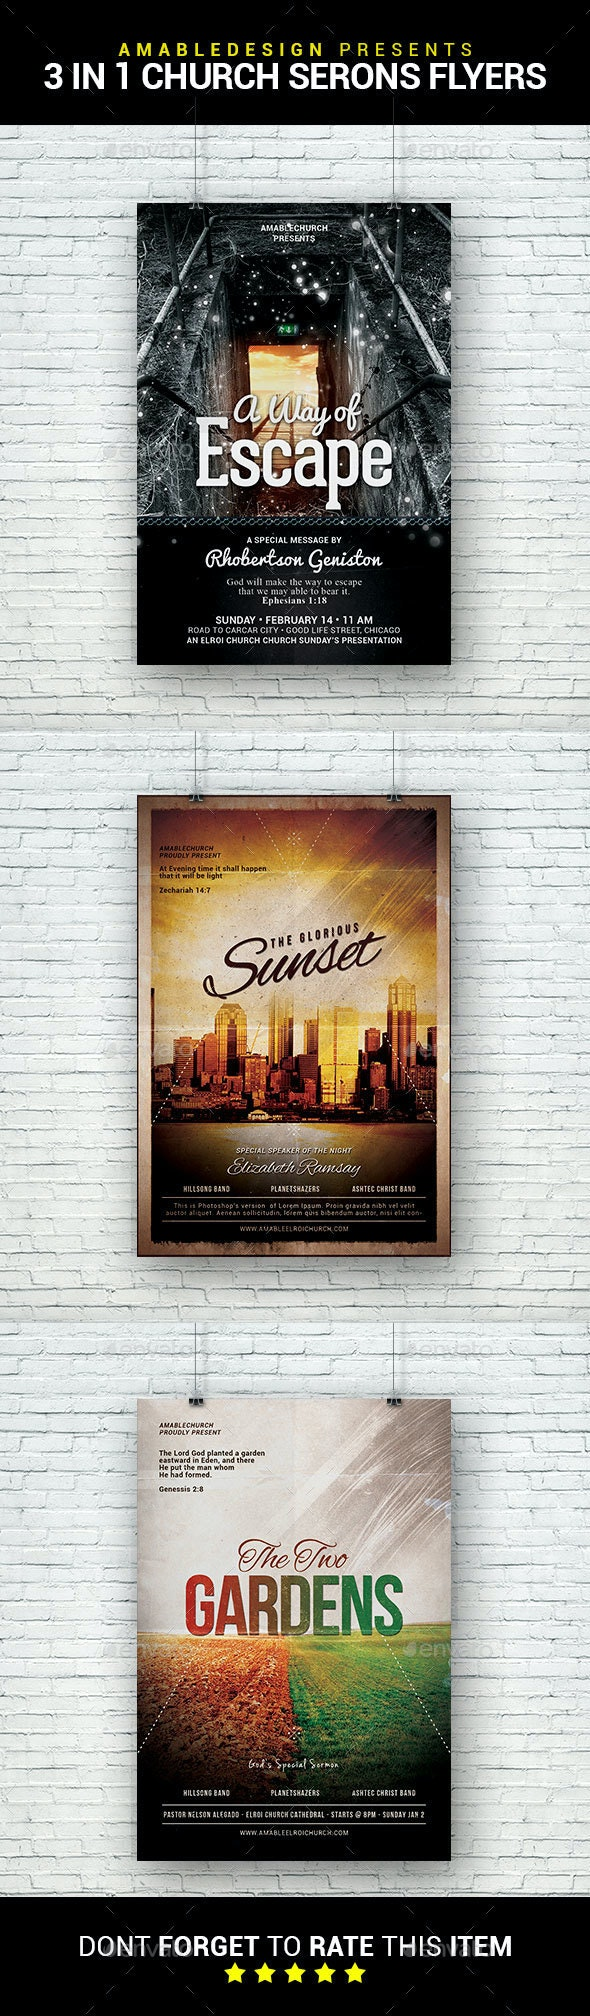 3 in 1 Church Sermons Flyer/Poster Bundle - Church Flyers